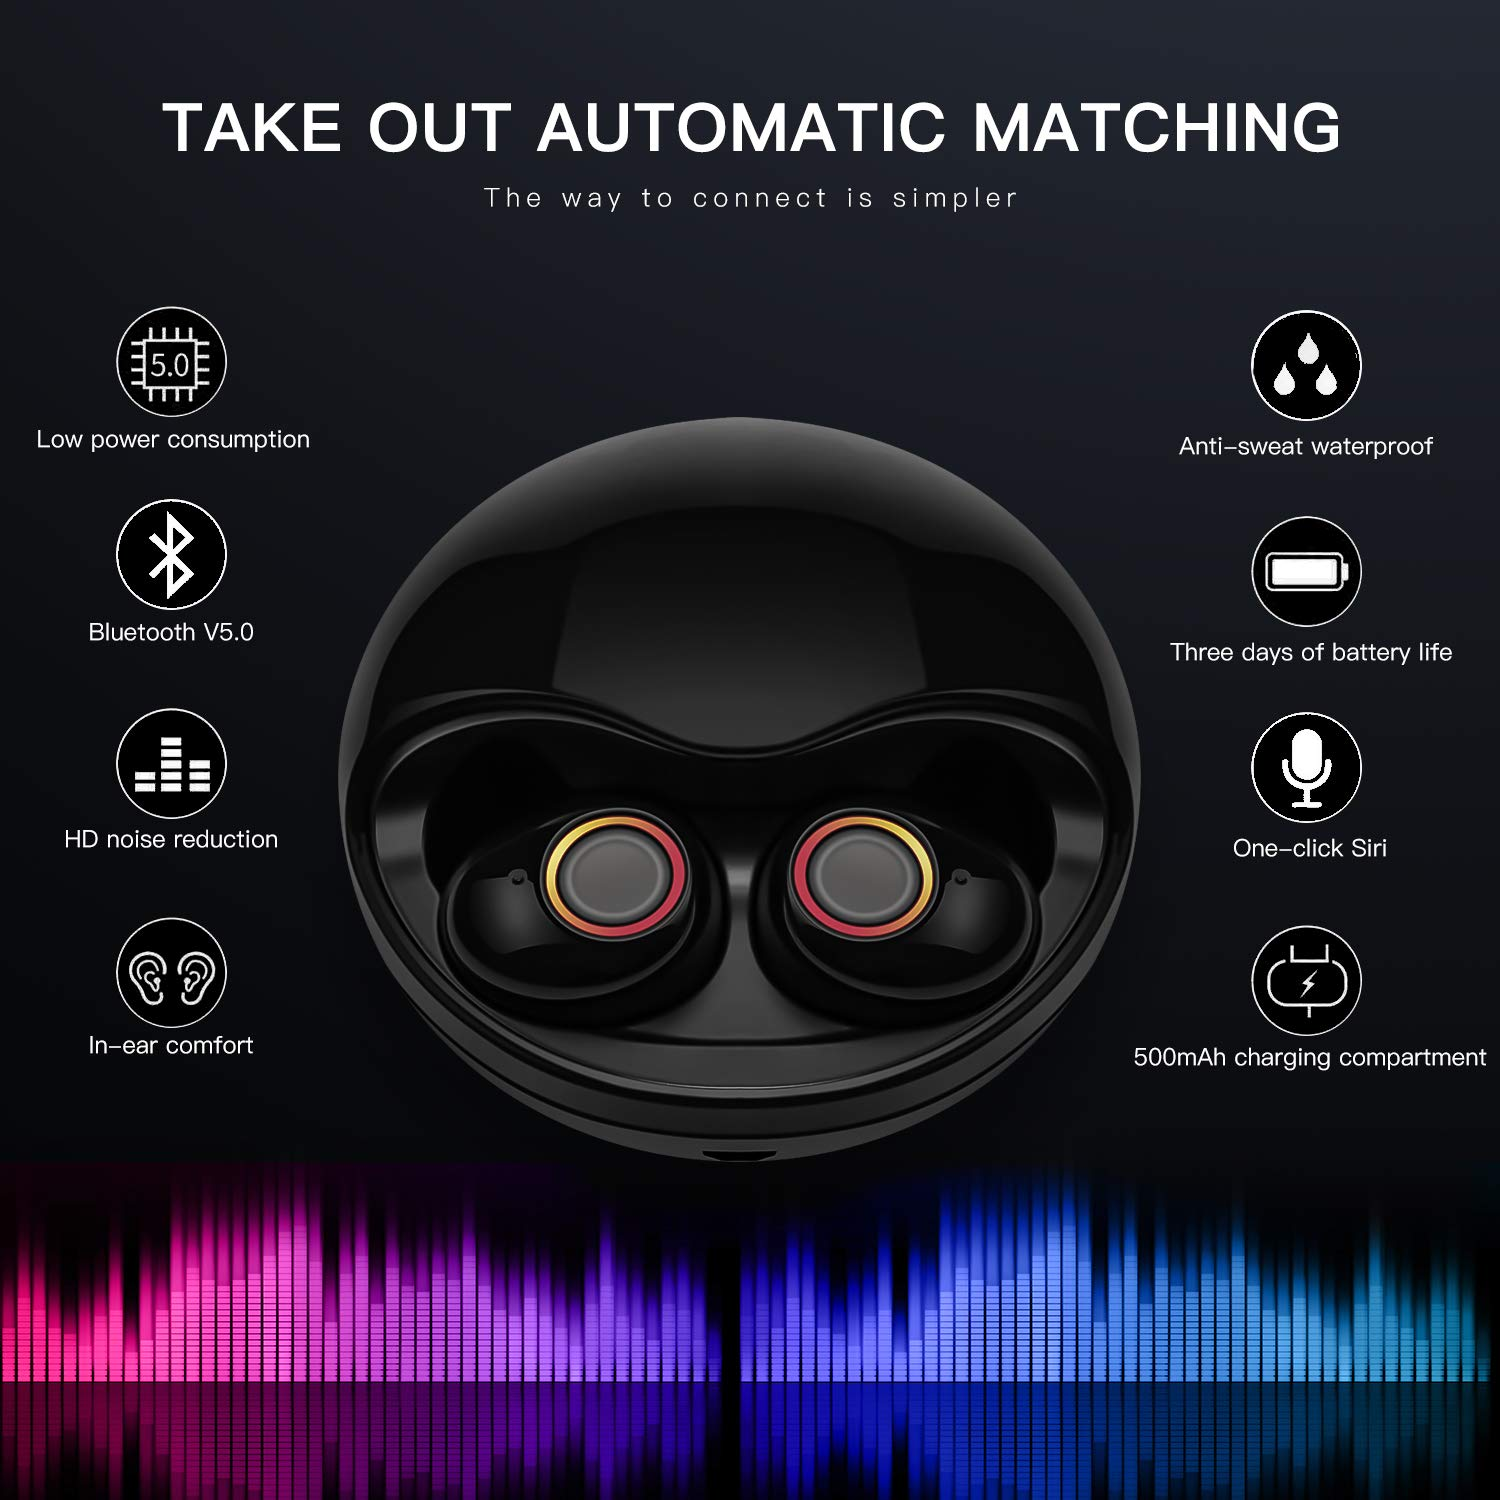 Wireless Earbuds, Bluetooth 5.0 in-Ear Sports Earphones, Auto Pairing Noise Cancelling Headsets, Strong Bass Bluetooth Earbuds